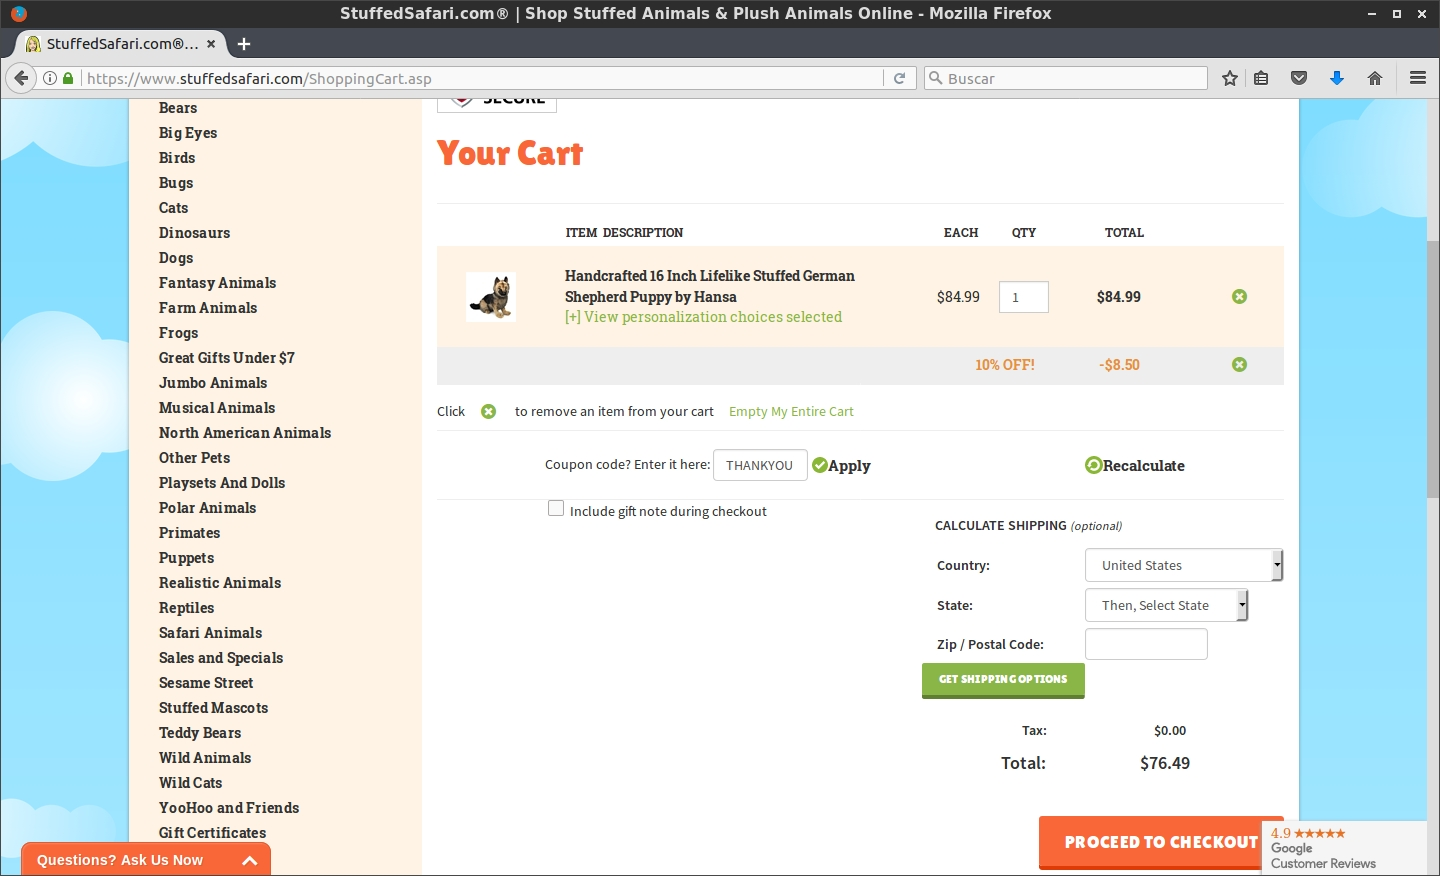 Stuffed safari coupon code. Stuffed Safari offers stuffed safari best coupon codes to its customers to ensure they get the best prices for the products that they get on stuffed safari stores. A customer with a stuffed safari best coupon codes can get amazing deals from stuffed safari stores for their products.